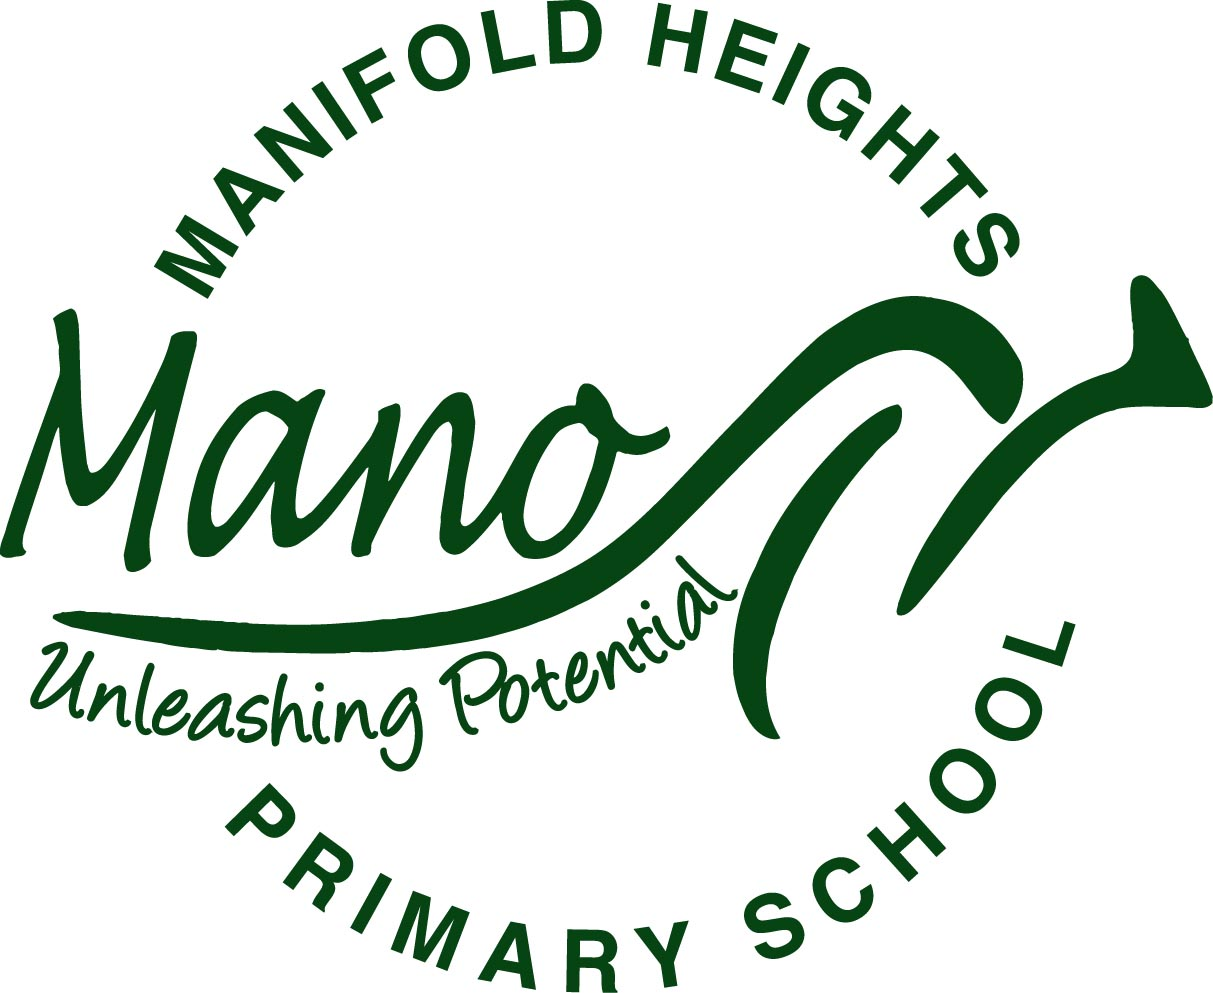 Manifold Heights Primary School